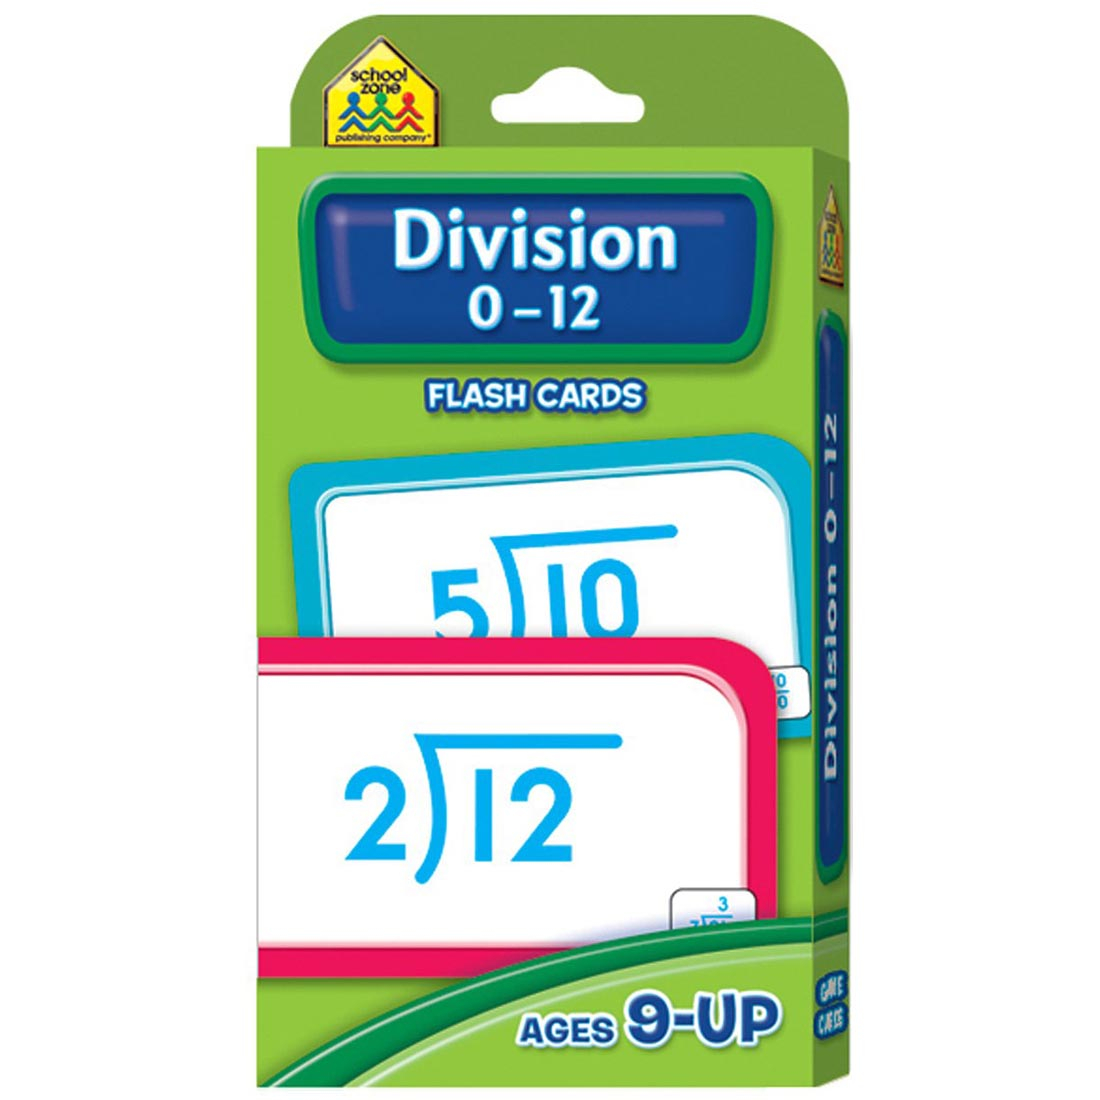 Details About School Zone Division 0-12 Flash Cards - Division 0-12 Flash  Cards